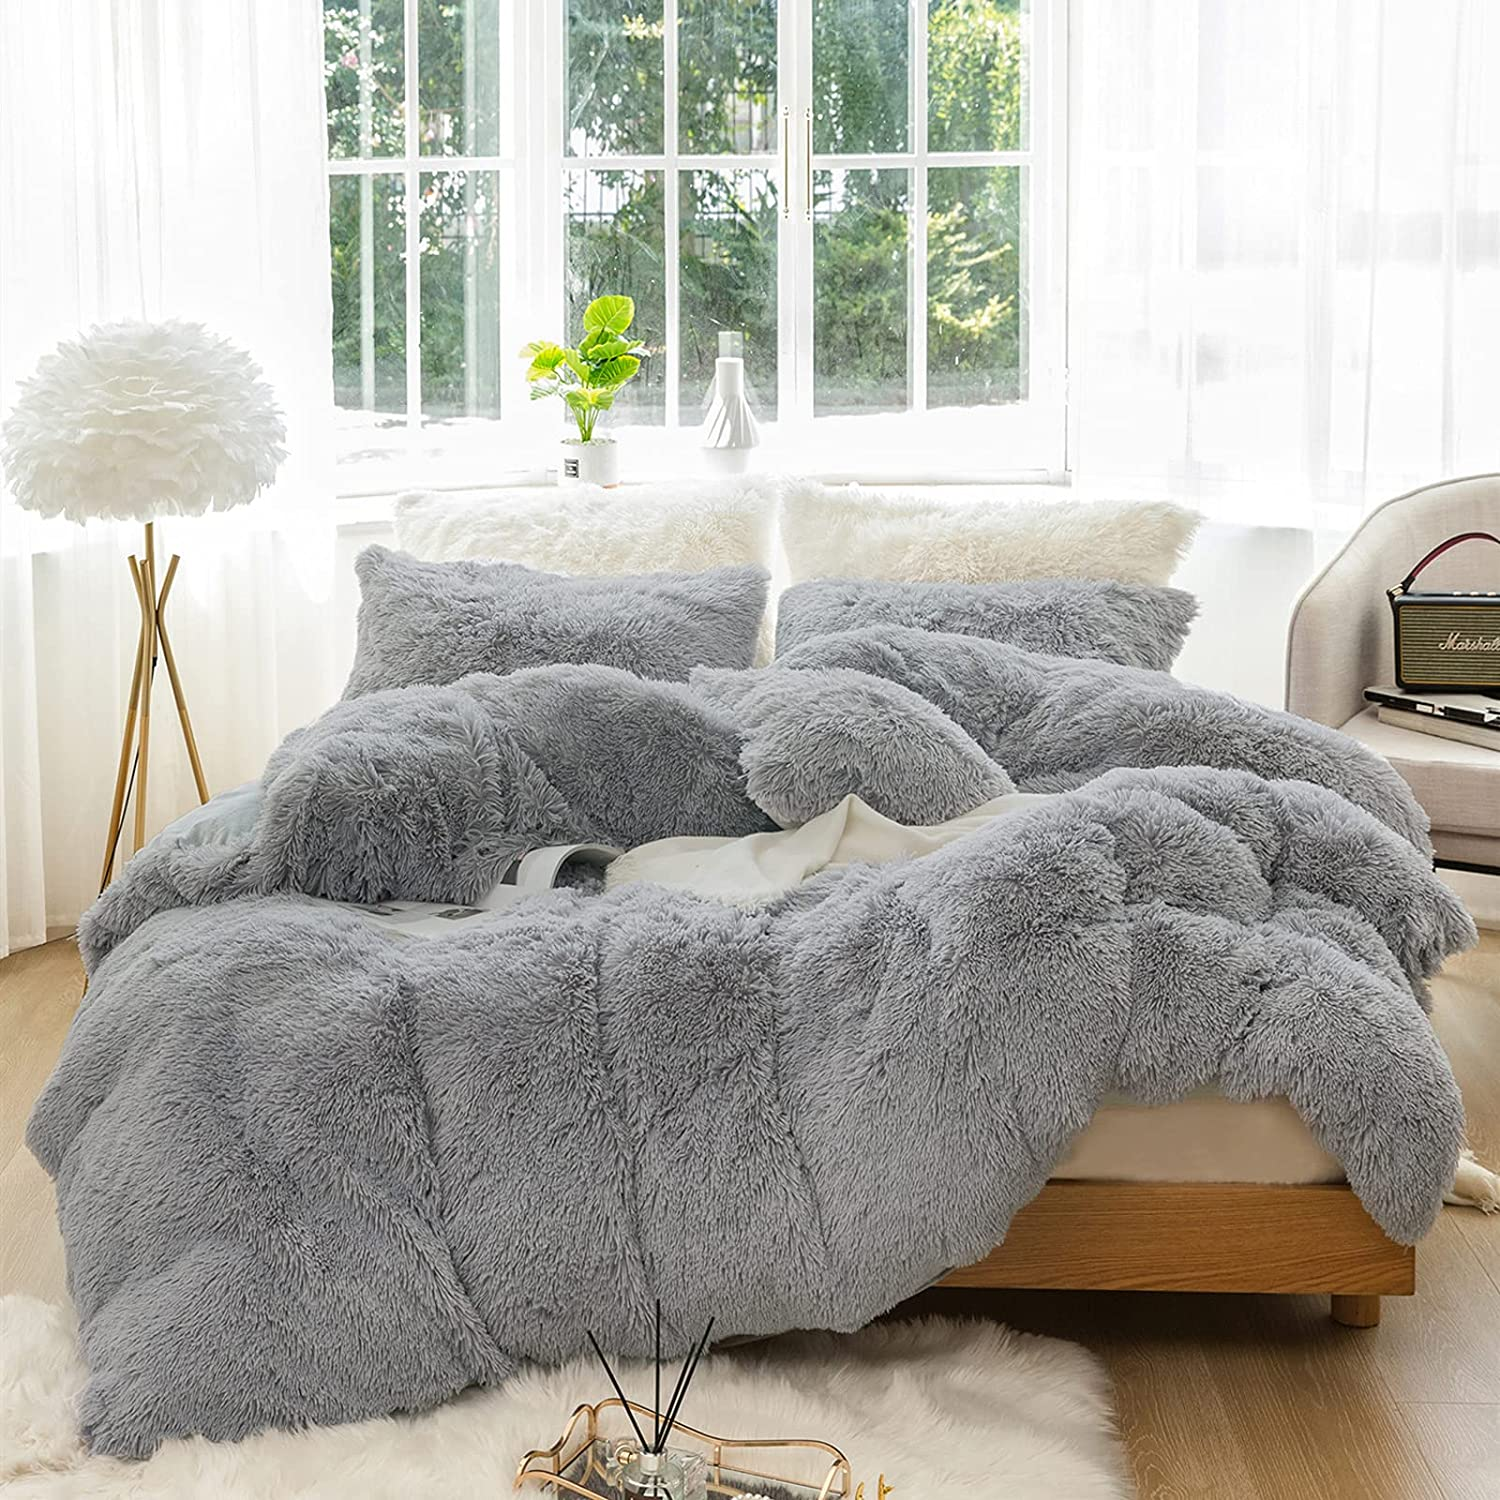 JOYPOINT 3 PC Outstanding Plush Shaggy Duvet Luxury Set Max 79% OFF Ultra Cry Soft Cover